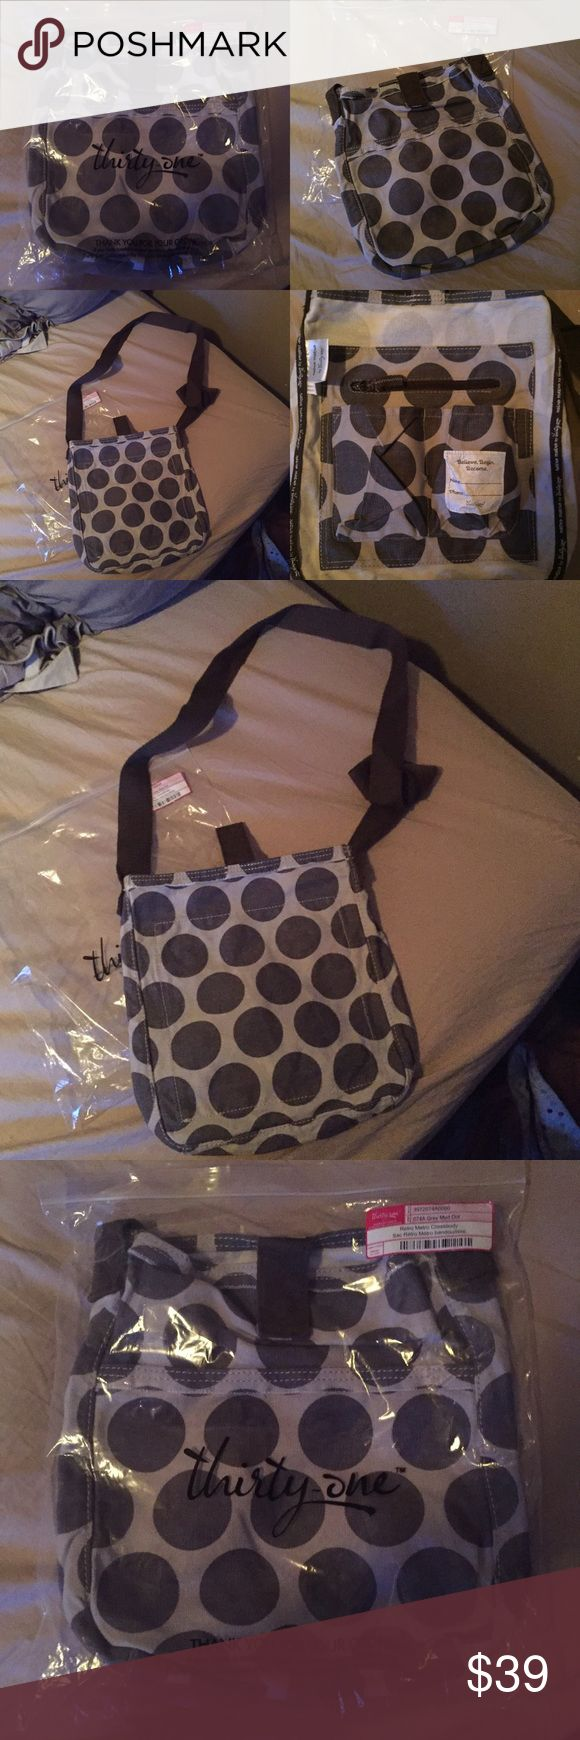 31 Retro Metro Crossbody Grey Mod Dot 1-HR SALE! Thirty-One Retro Metro Cross Body bag in Grey Mod Dot (Retired print and product) this item is brand new in original packaging was only taken out to take photos ! Also have the matching All-Day Organizing Tote ! Bundle and save! Thirty One Bags Crossbody Bags